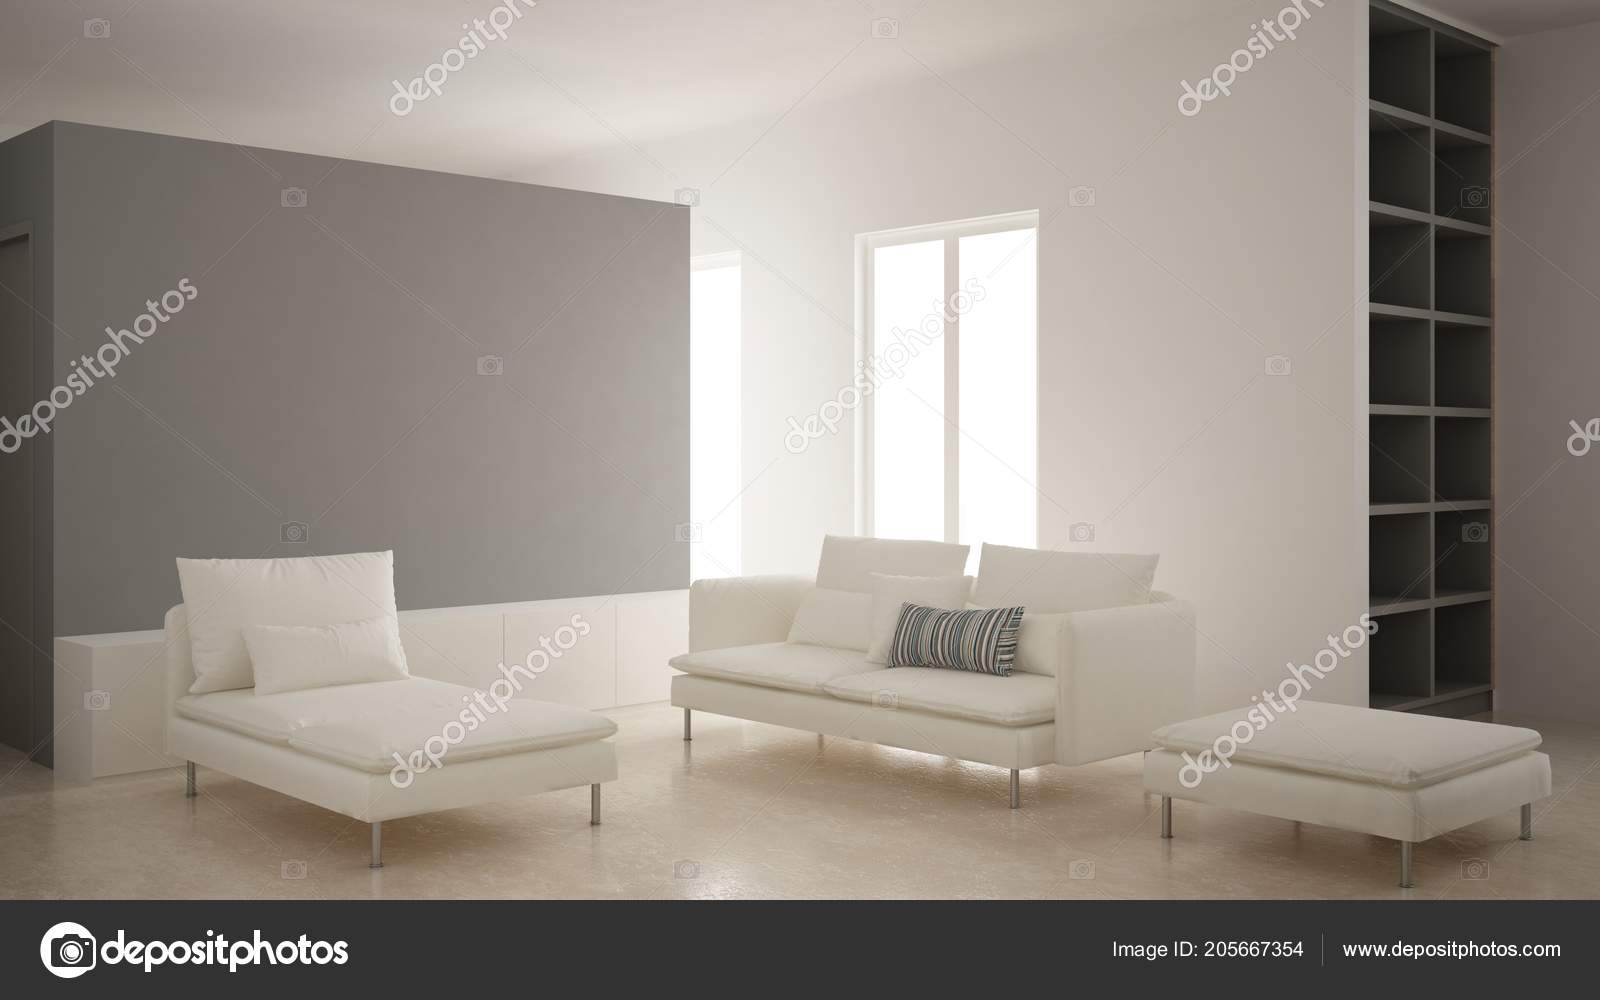 Minimalism Modern Living Room Gray Plaster Wall Sofa Chaise Longue Stock Photo C Archiviz 205667354